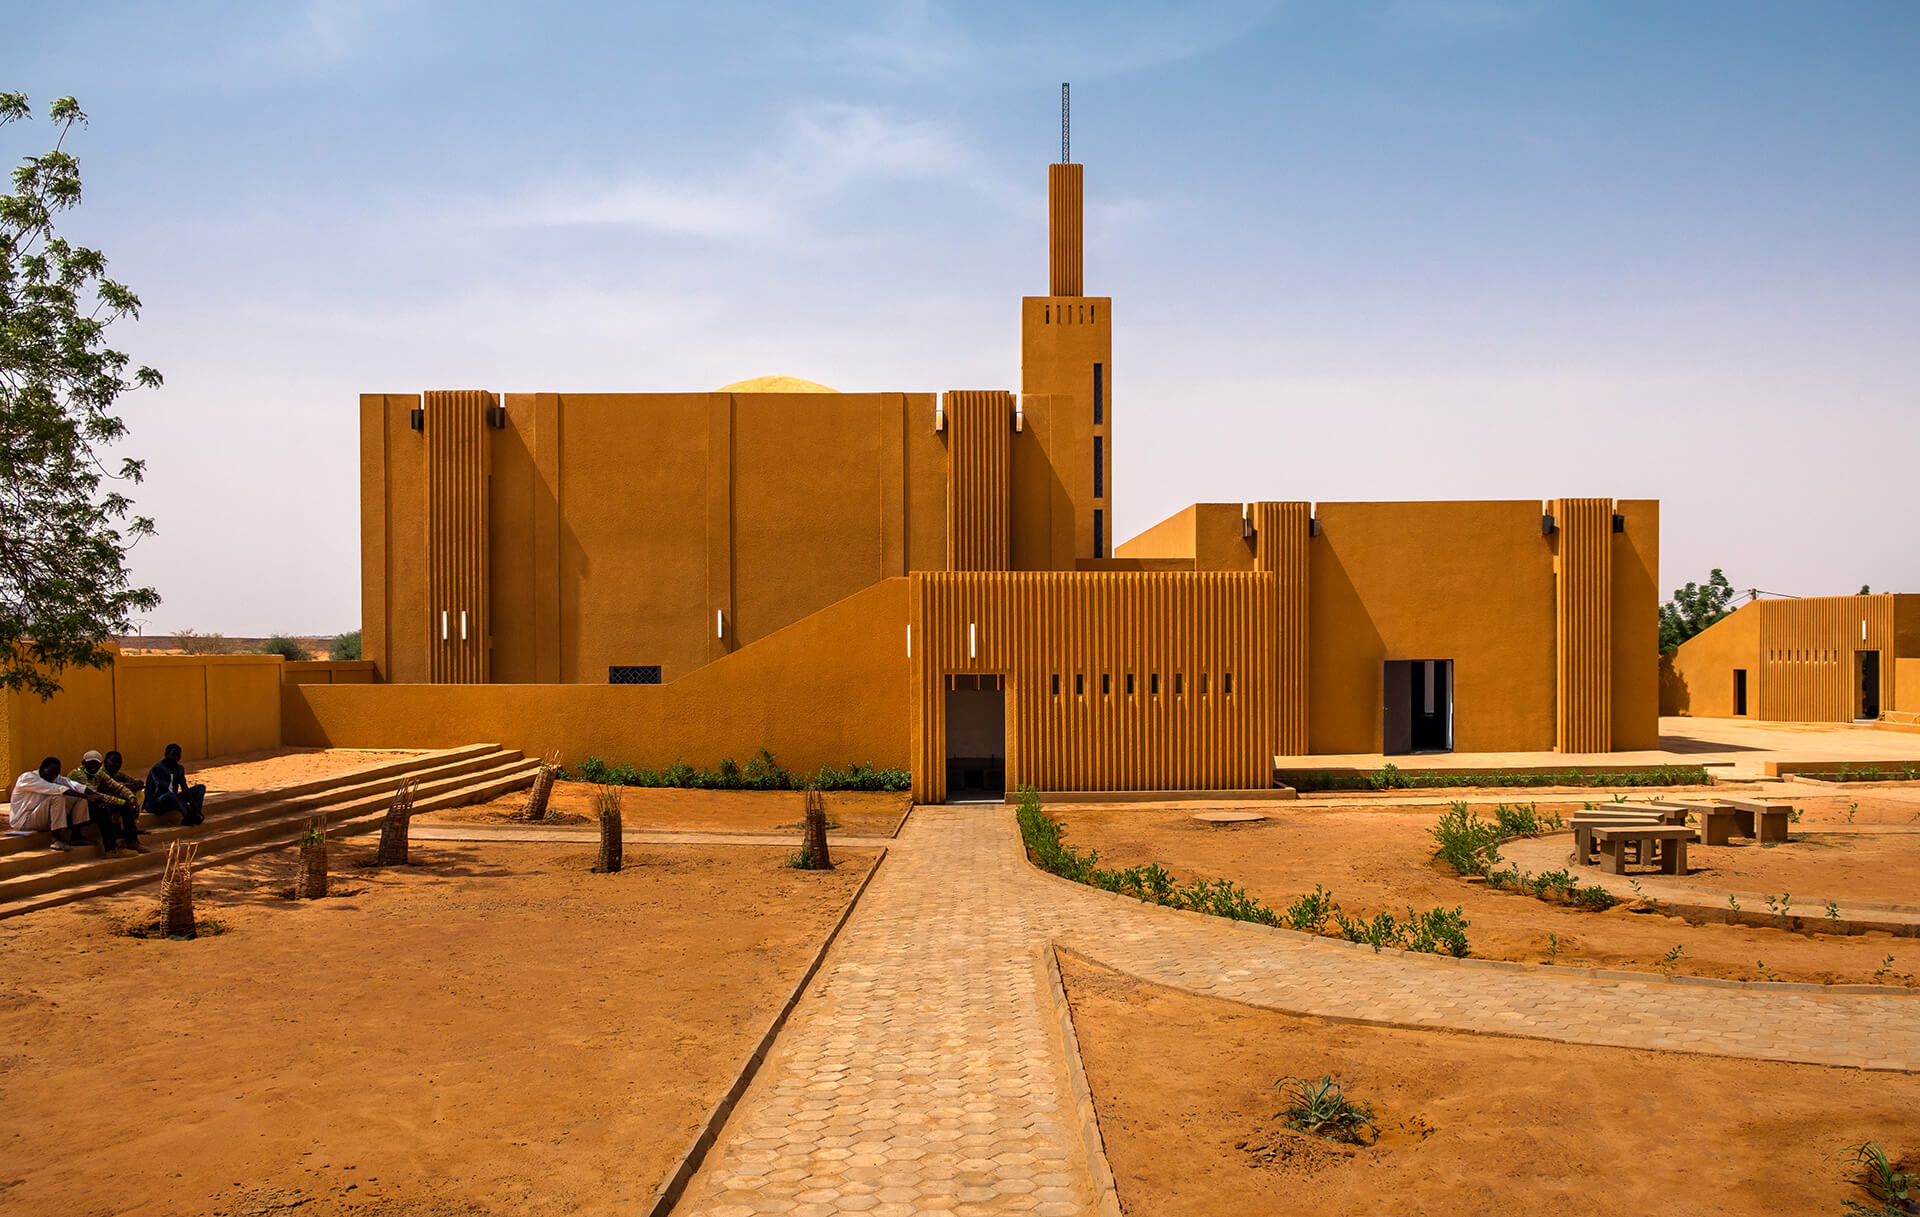 The dialogue between the formal structures of the old and new leads to further collaboration between the traditional masons and the construction crew for the Hikma, Niger |Yasaman Esmaili | Studio Chahar | STIRworld